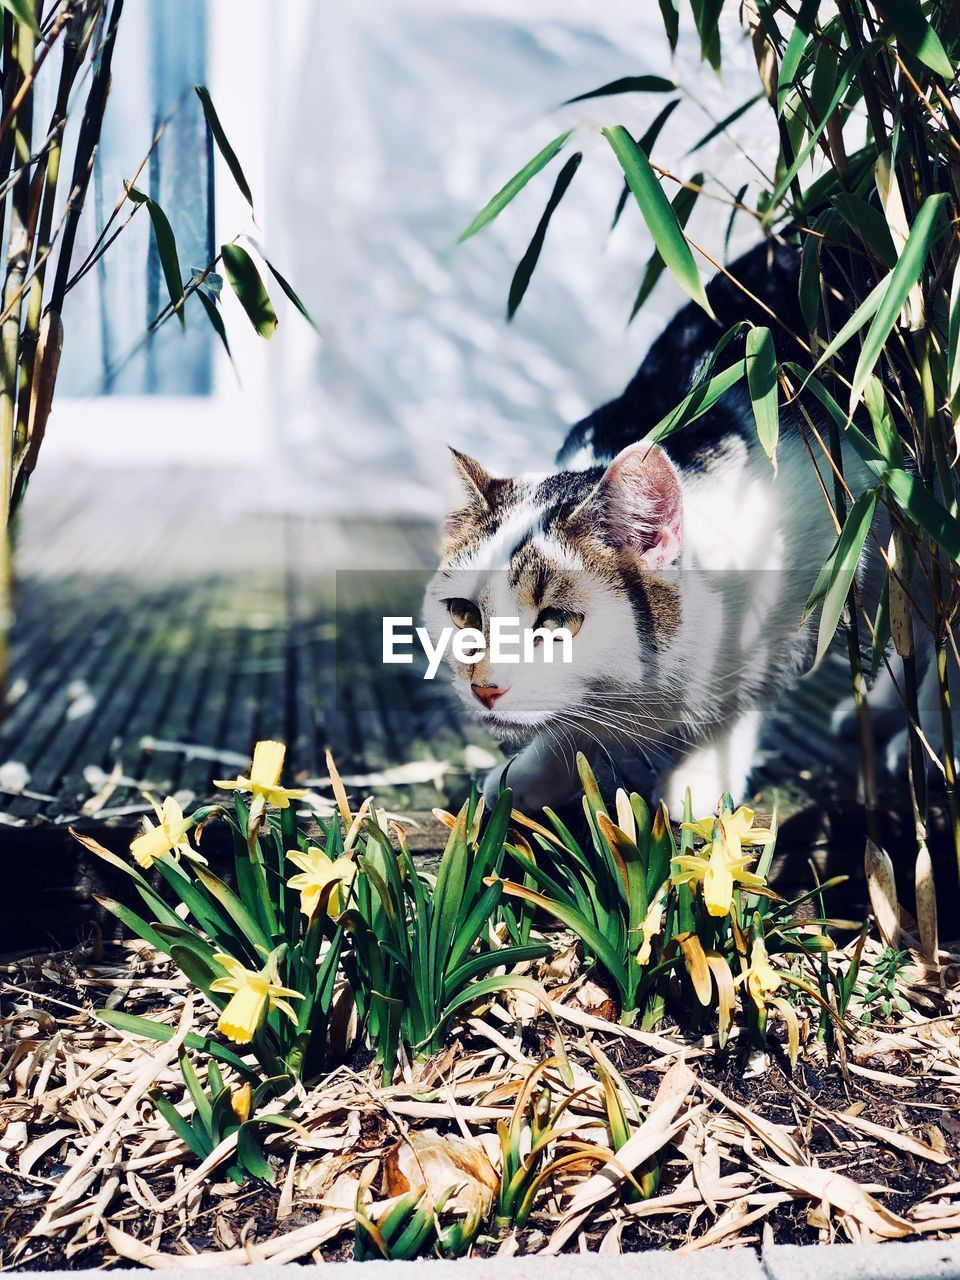 cat, one animal, domestic, feline, pets, animal themes, vertebrate, mammal, animal, plant, domestic animals, domestic cat, nature, no people, plant part, day, leaf, growth, looking away, looking, outdoors, whisker